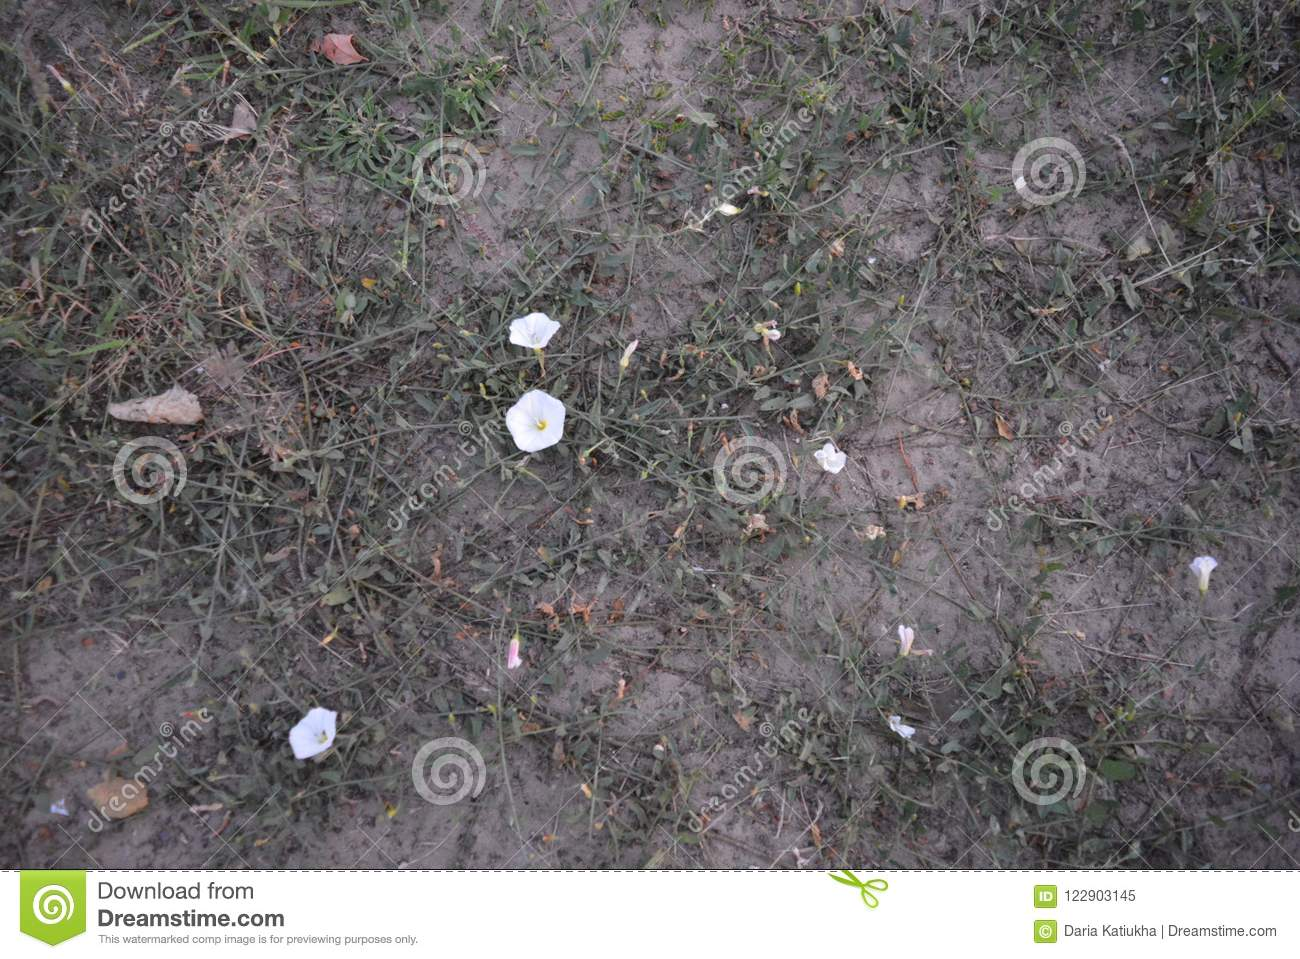 On White River Sand With Spreading Grass And White Flowers In The